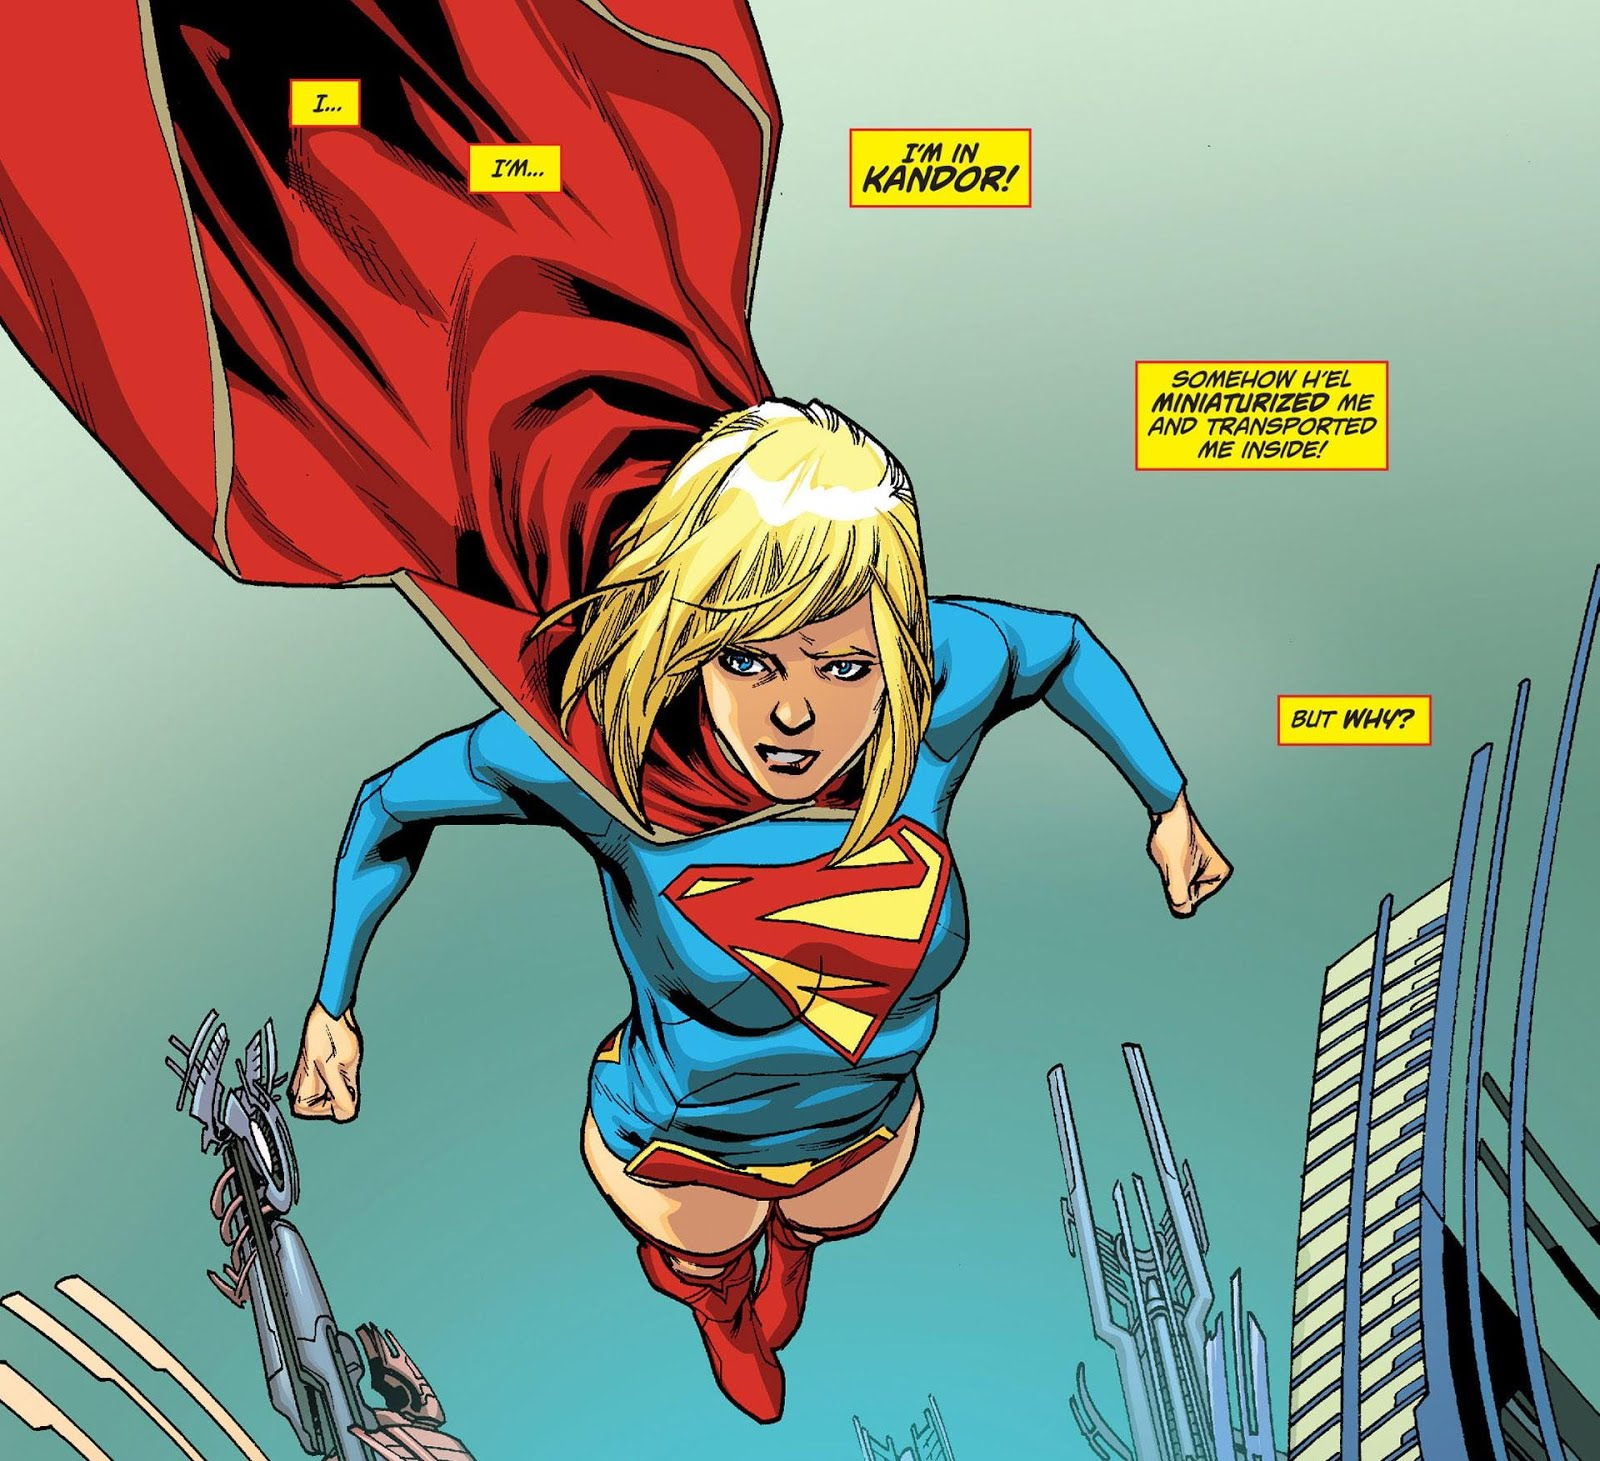 Supergirl 2761791-i_m_in_kandor_.jpg